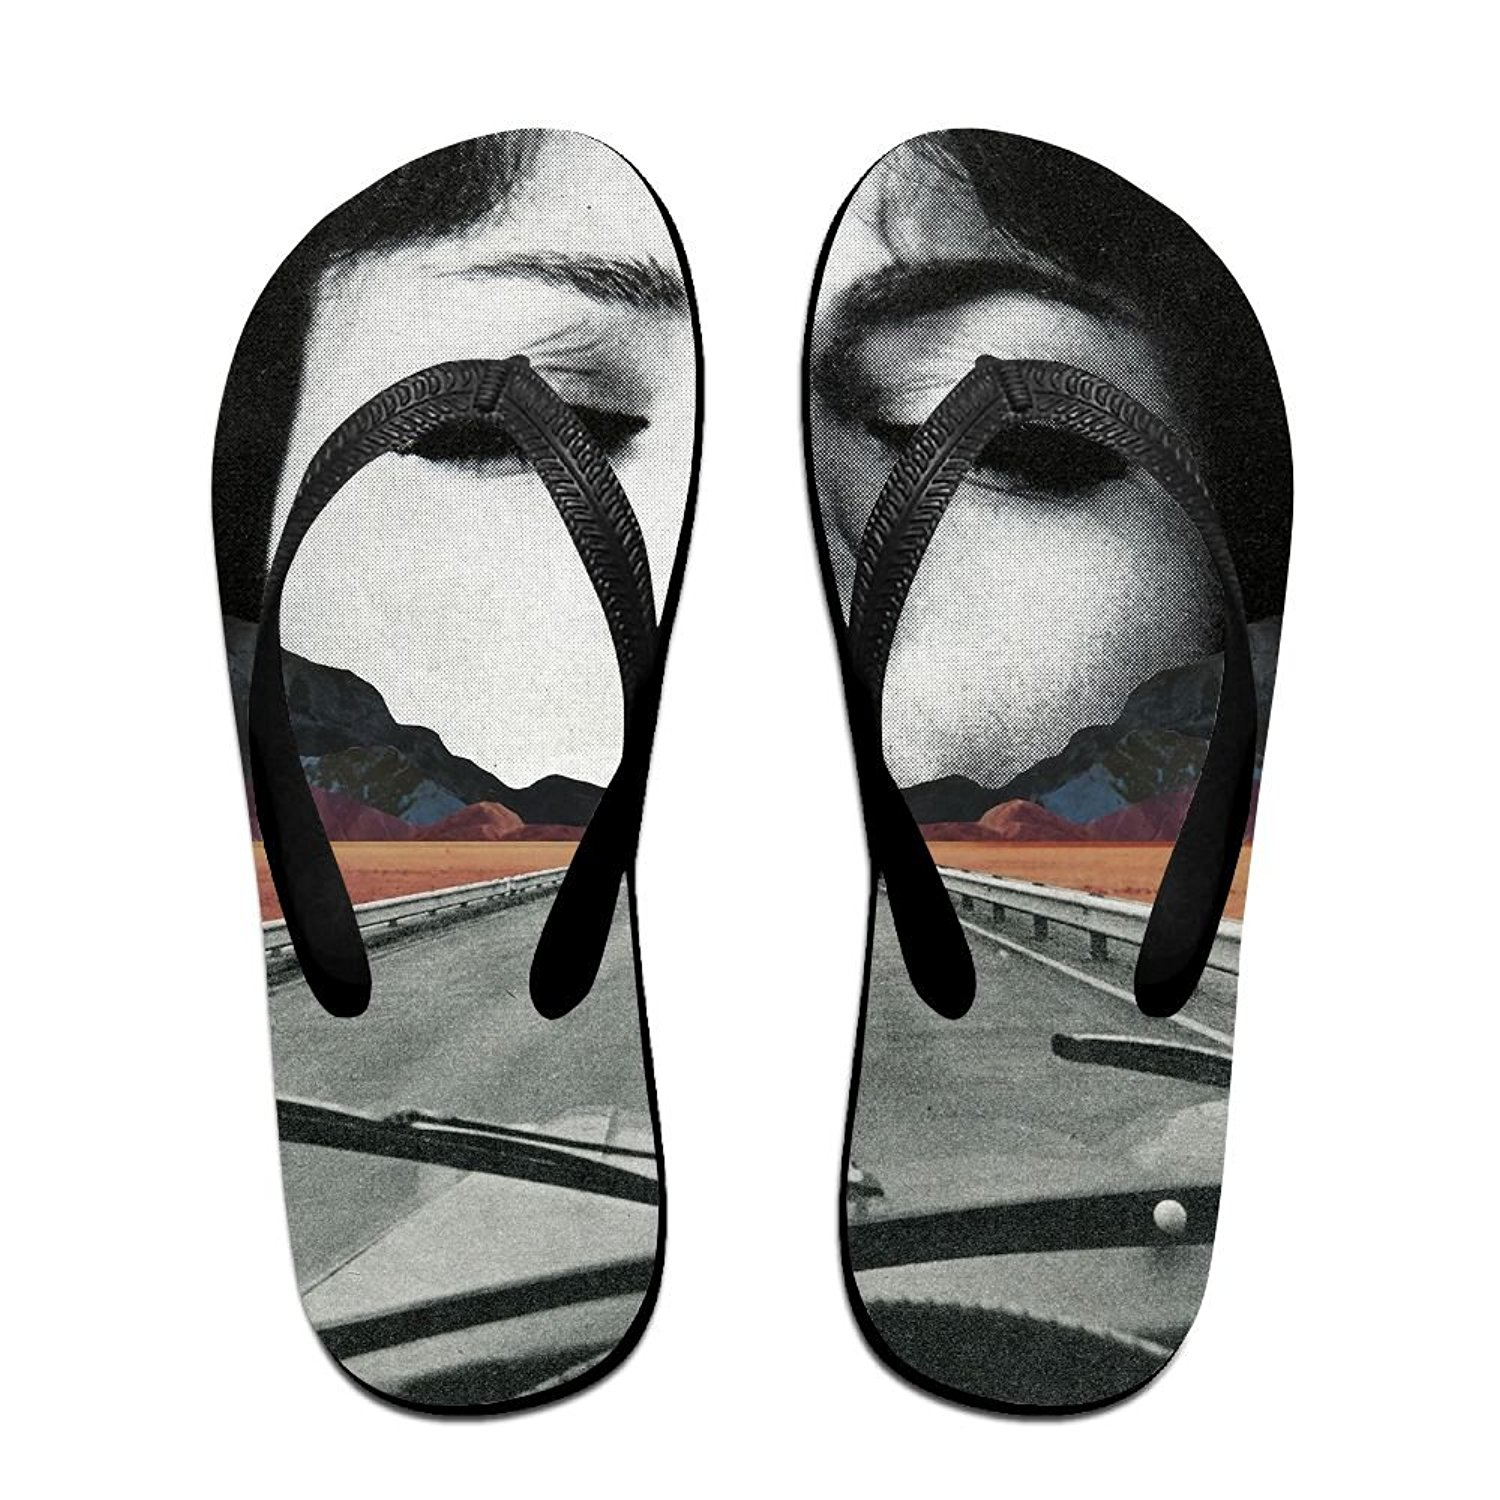 Couple Slipper Cat Use Camera Print Flip Flops Unisex Chic Sandals Rubber Non-Slip Beach Thong Slippers